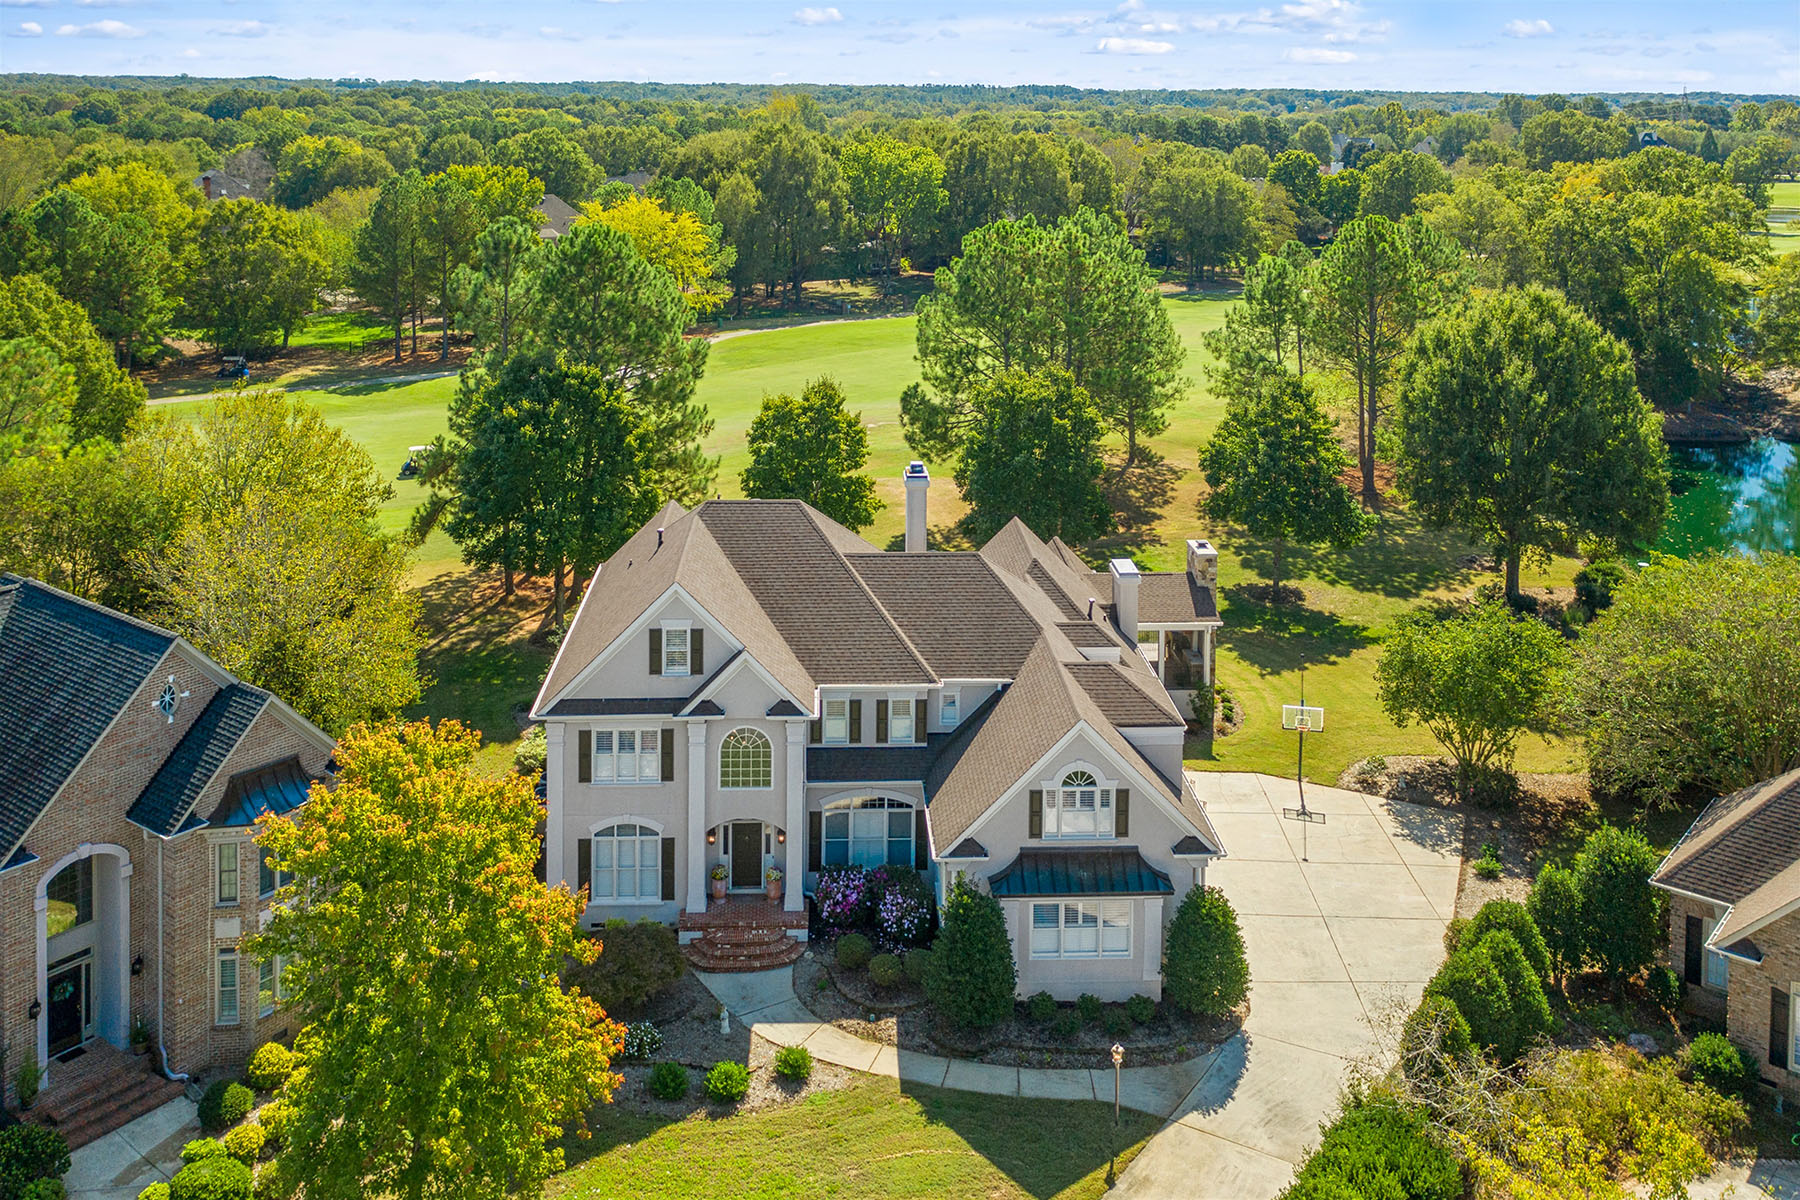 Single Family Homes for Active at PROVIDENCE COUNTRY CLUB 10801 Wicklow Brook Ct Charlotte, North Carolina 28277 United States